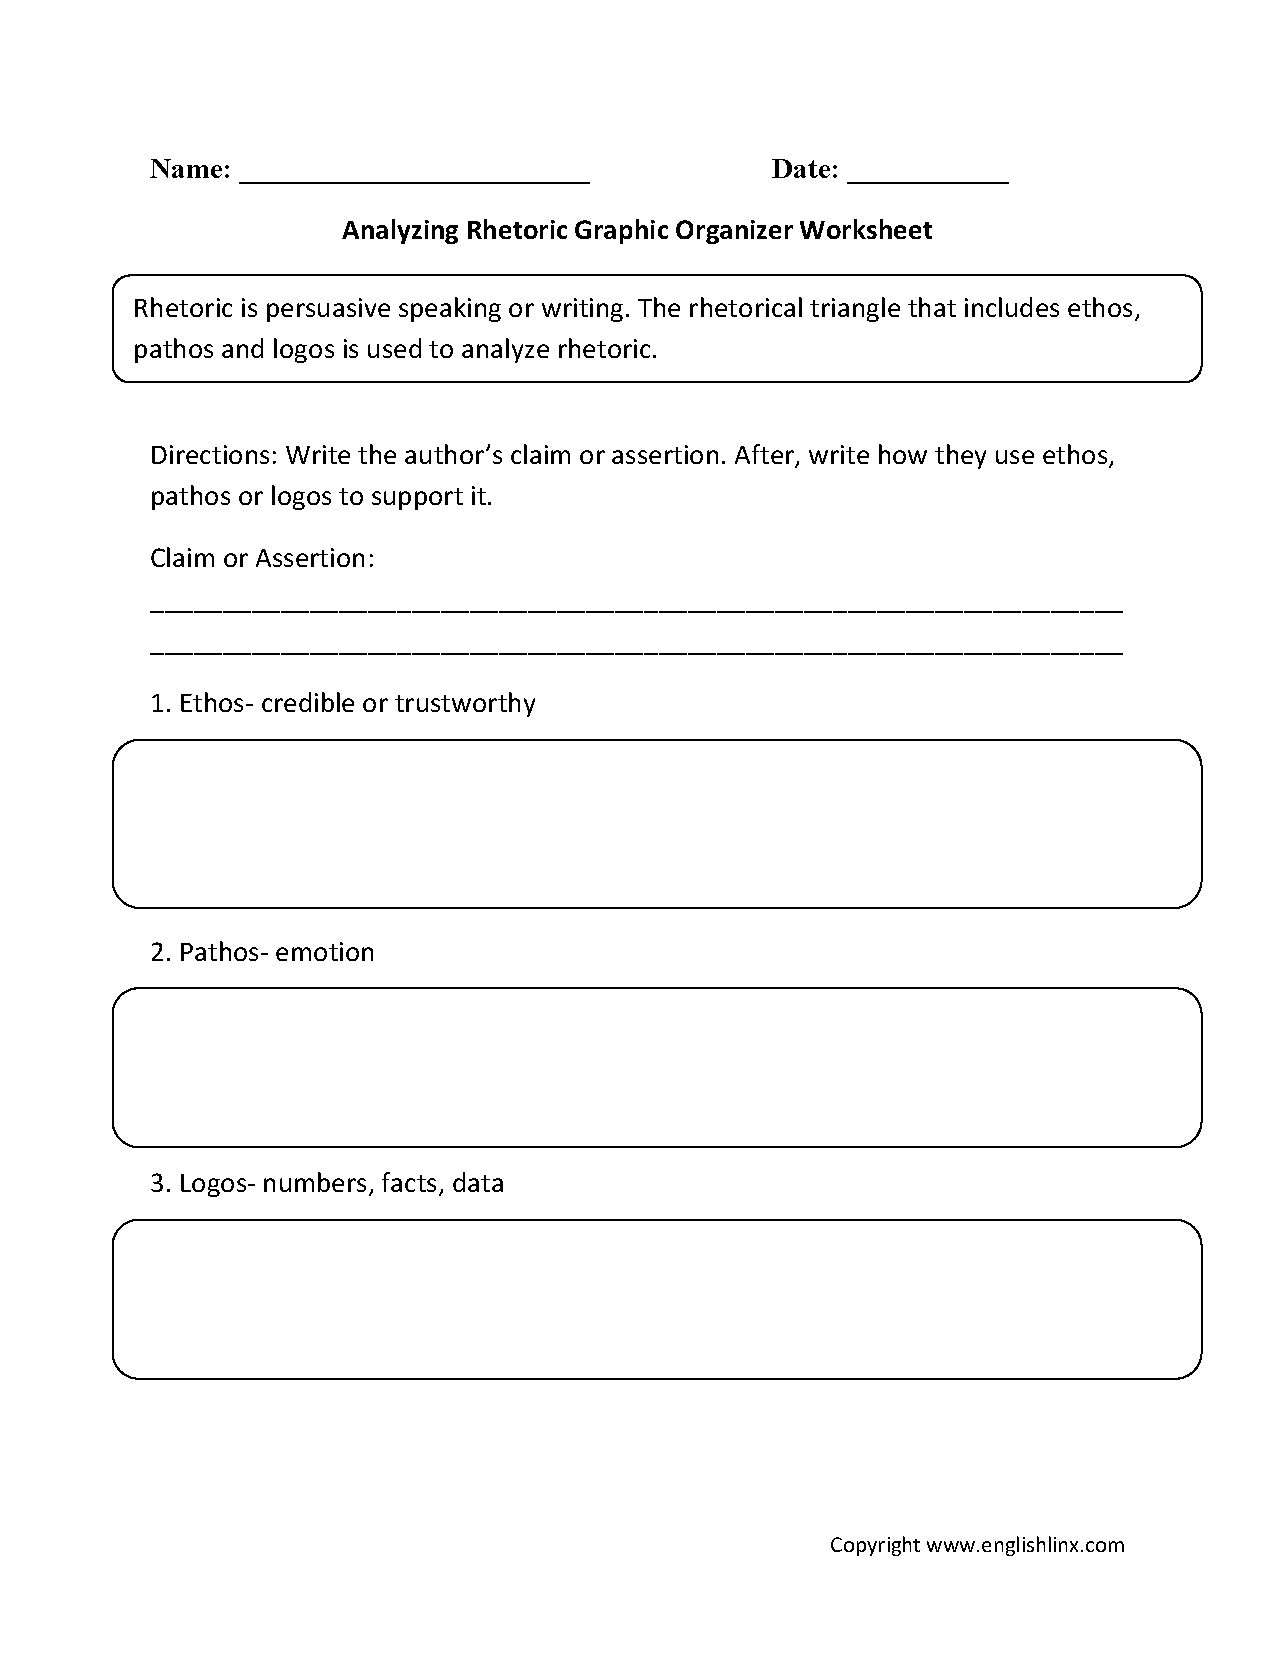 Rhetorical Triangle Worksheet